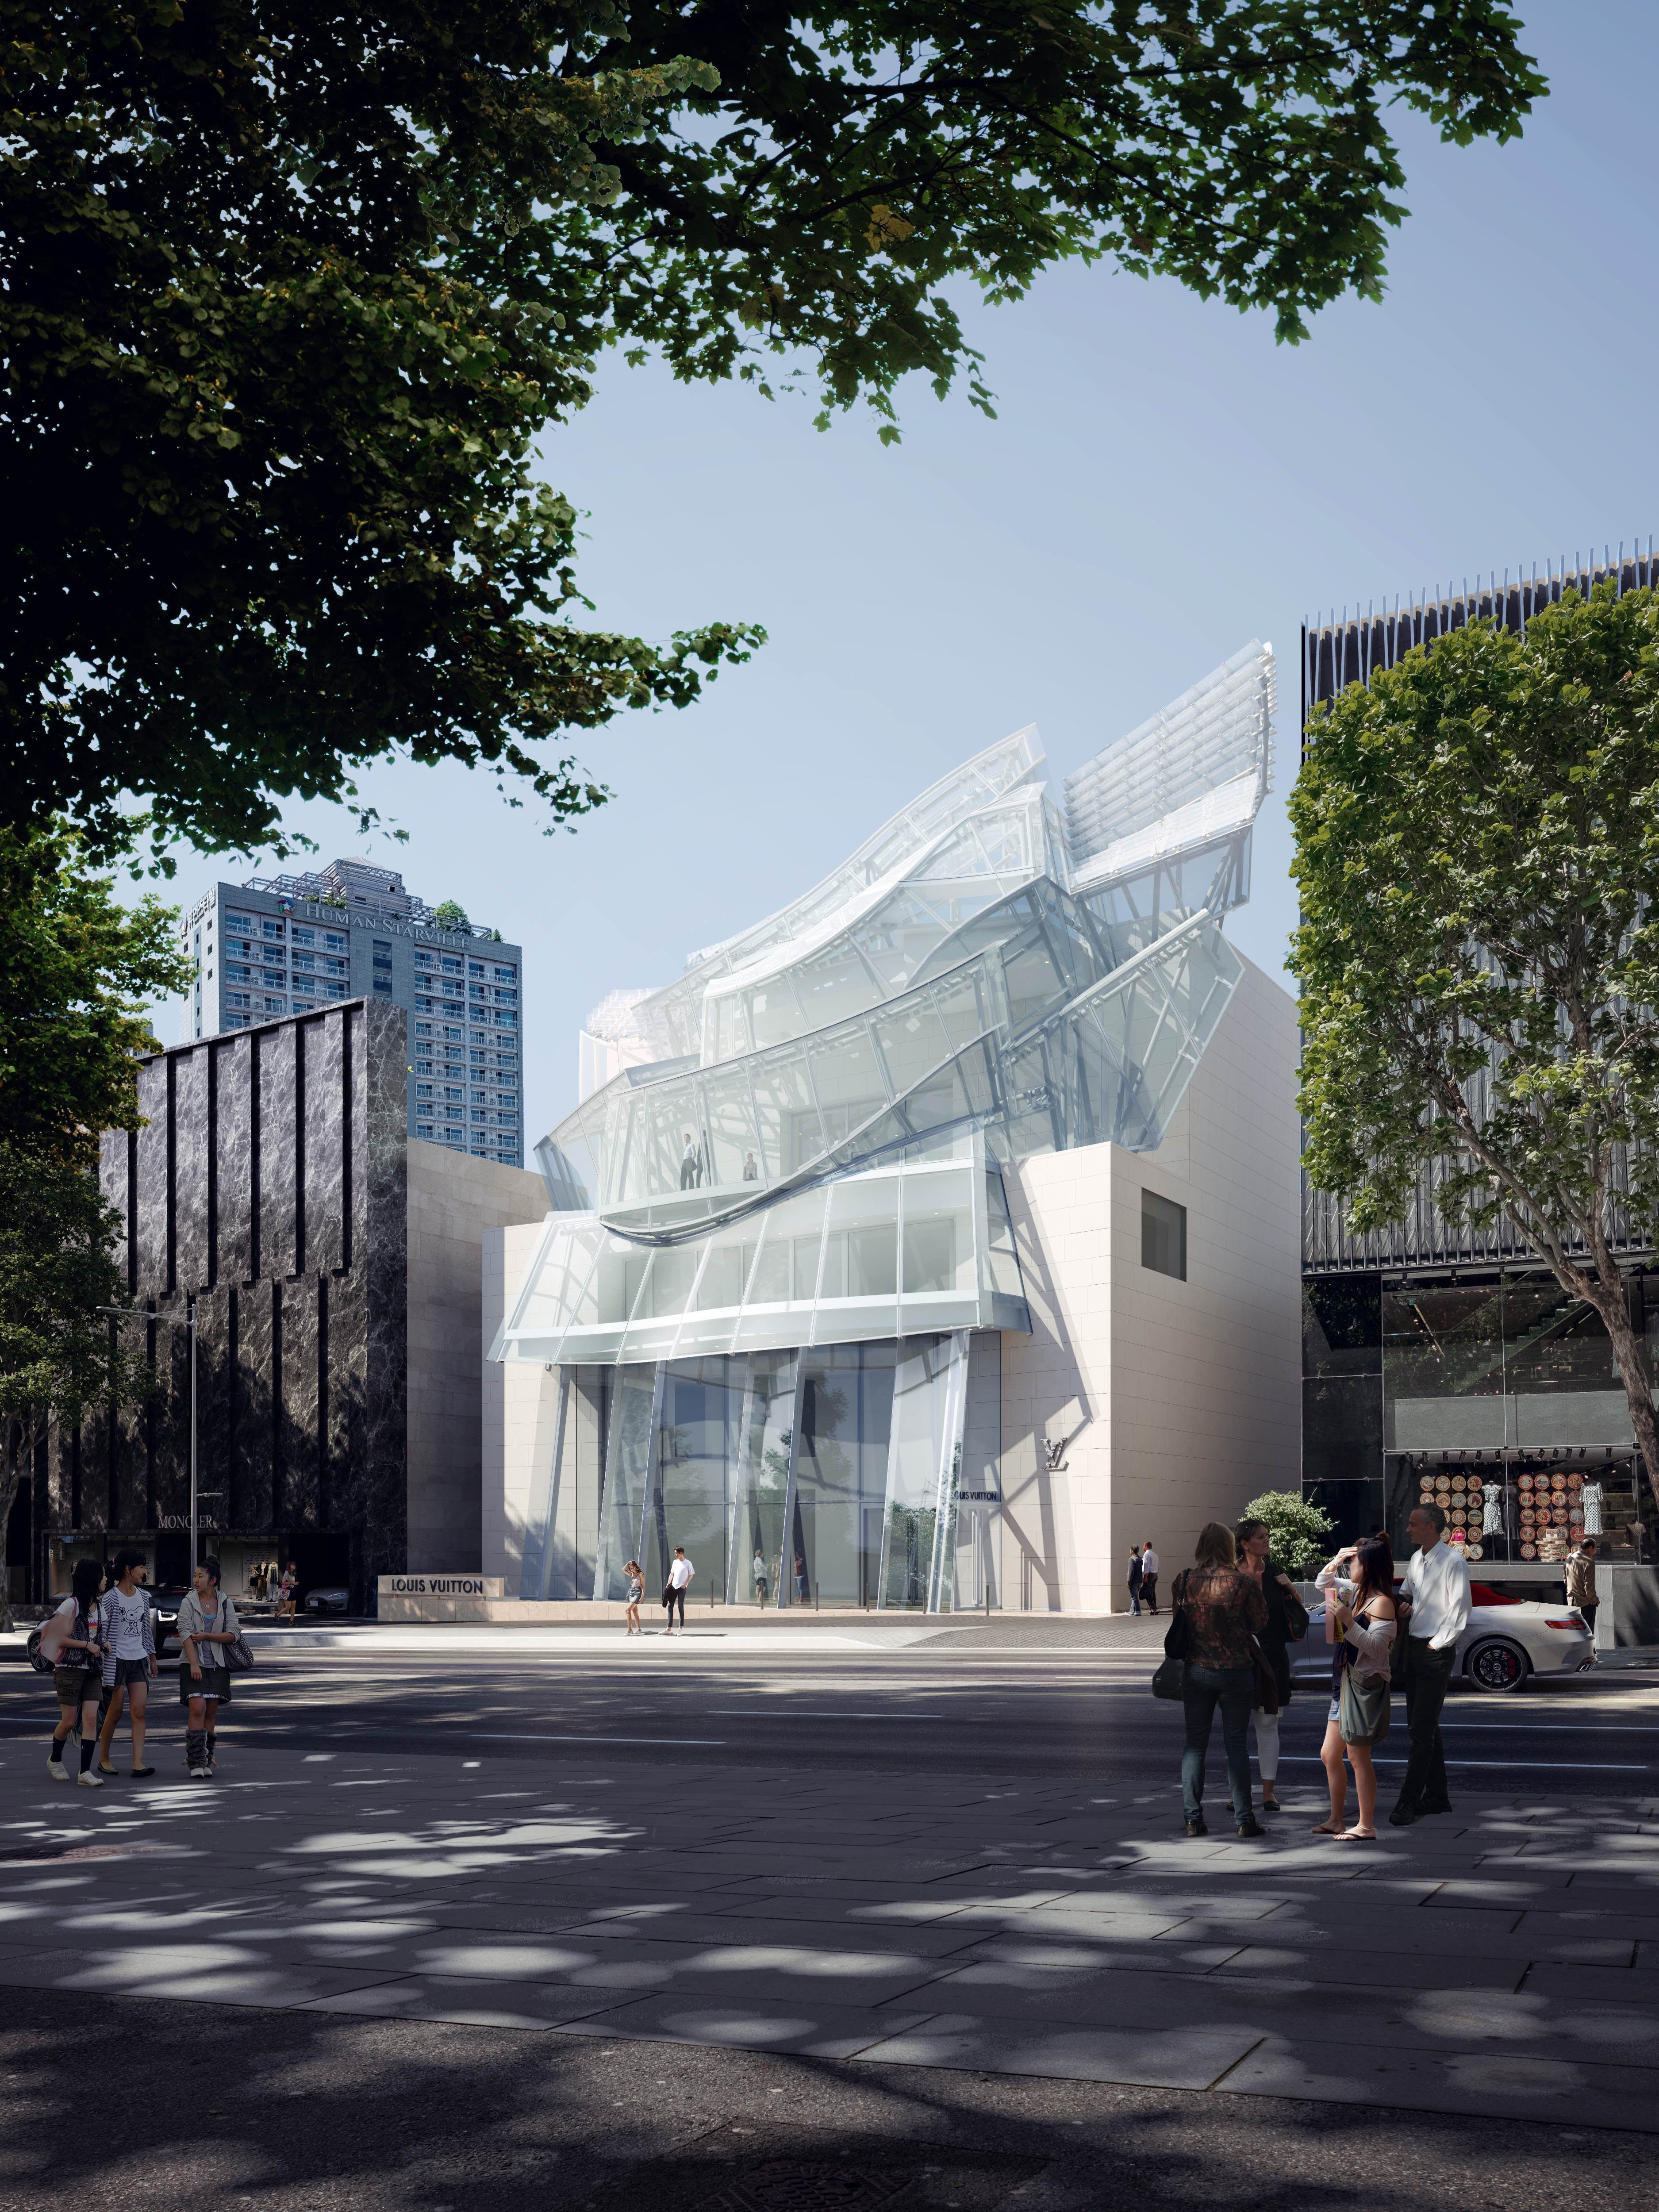 A rendering of the new Louis Vuitton Maison in Seoul.